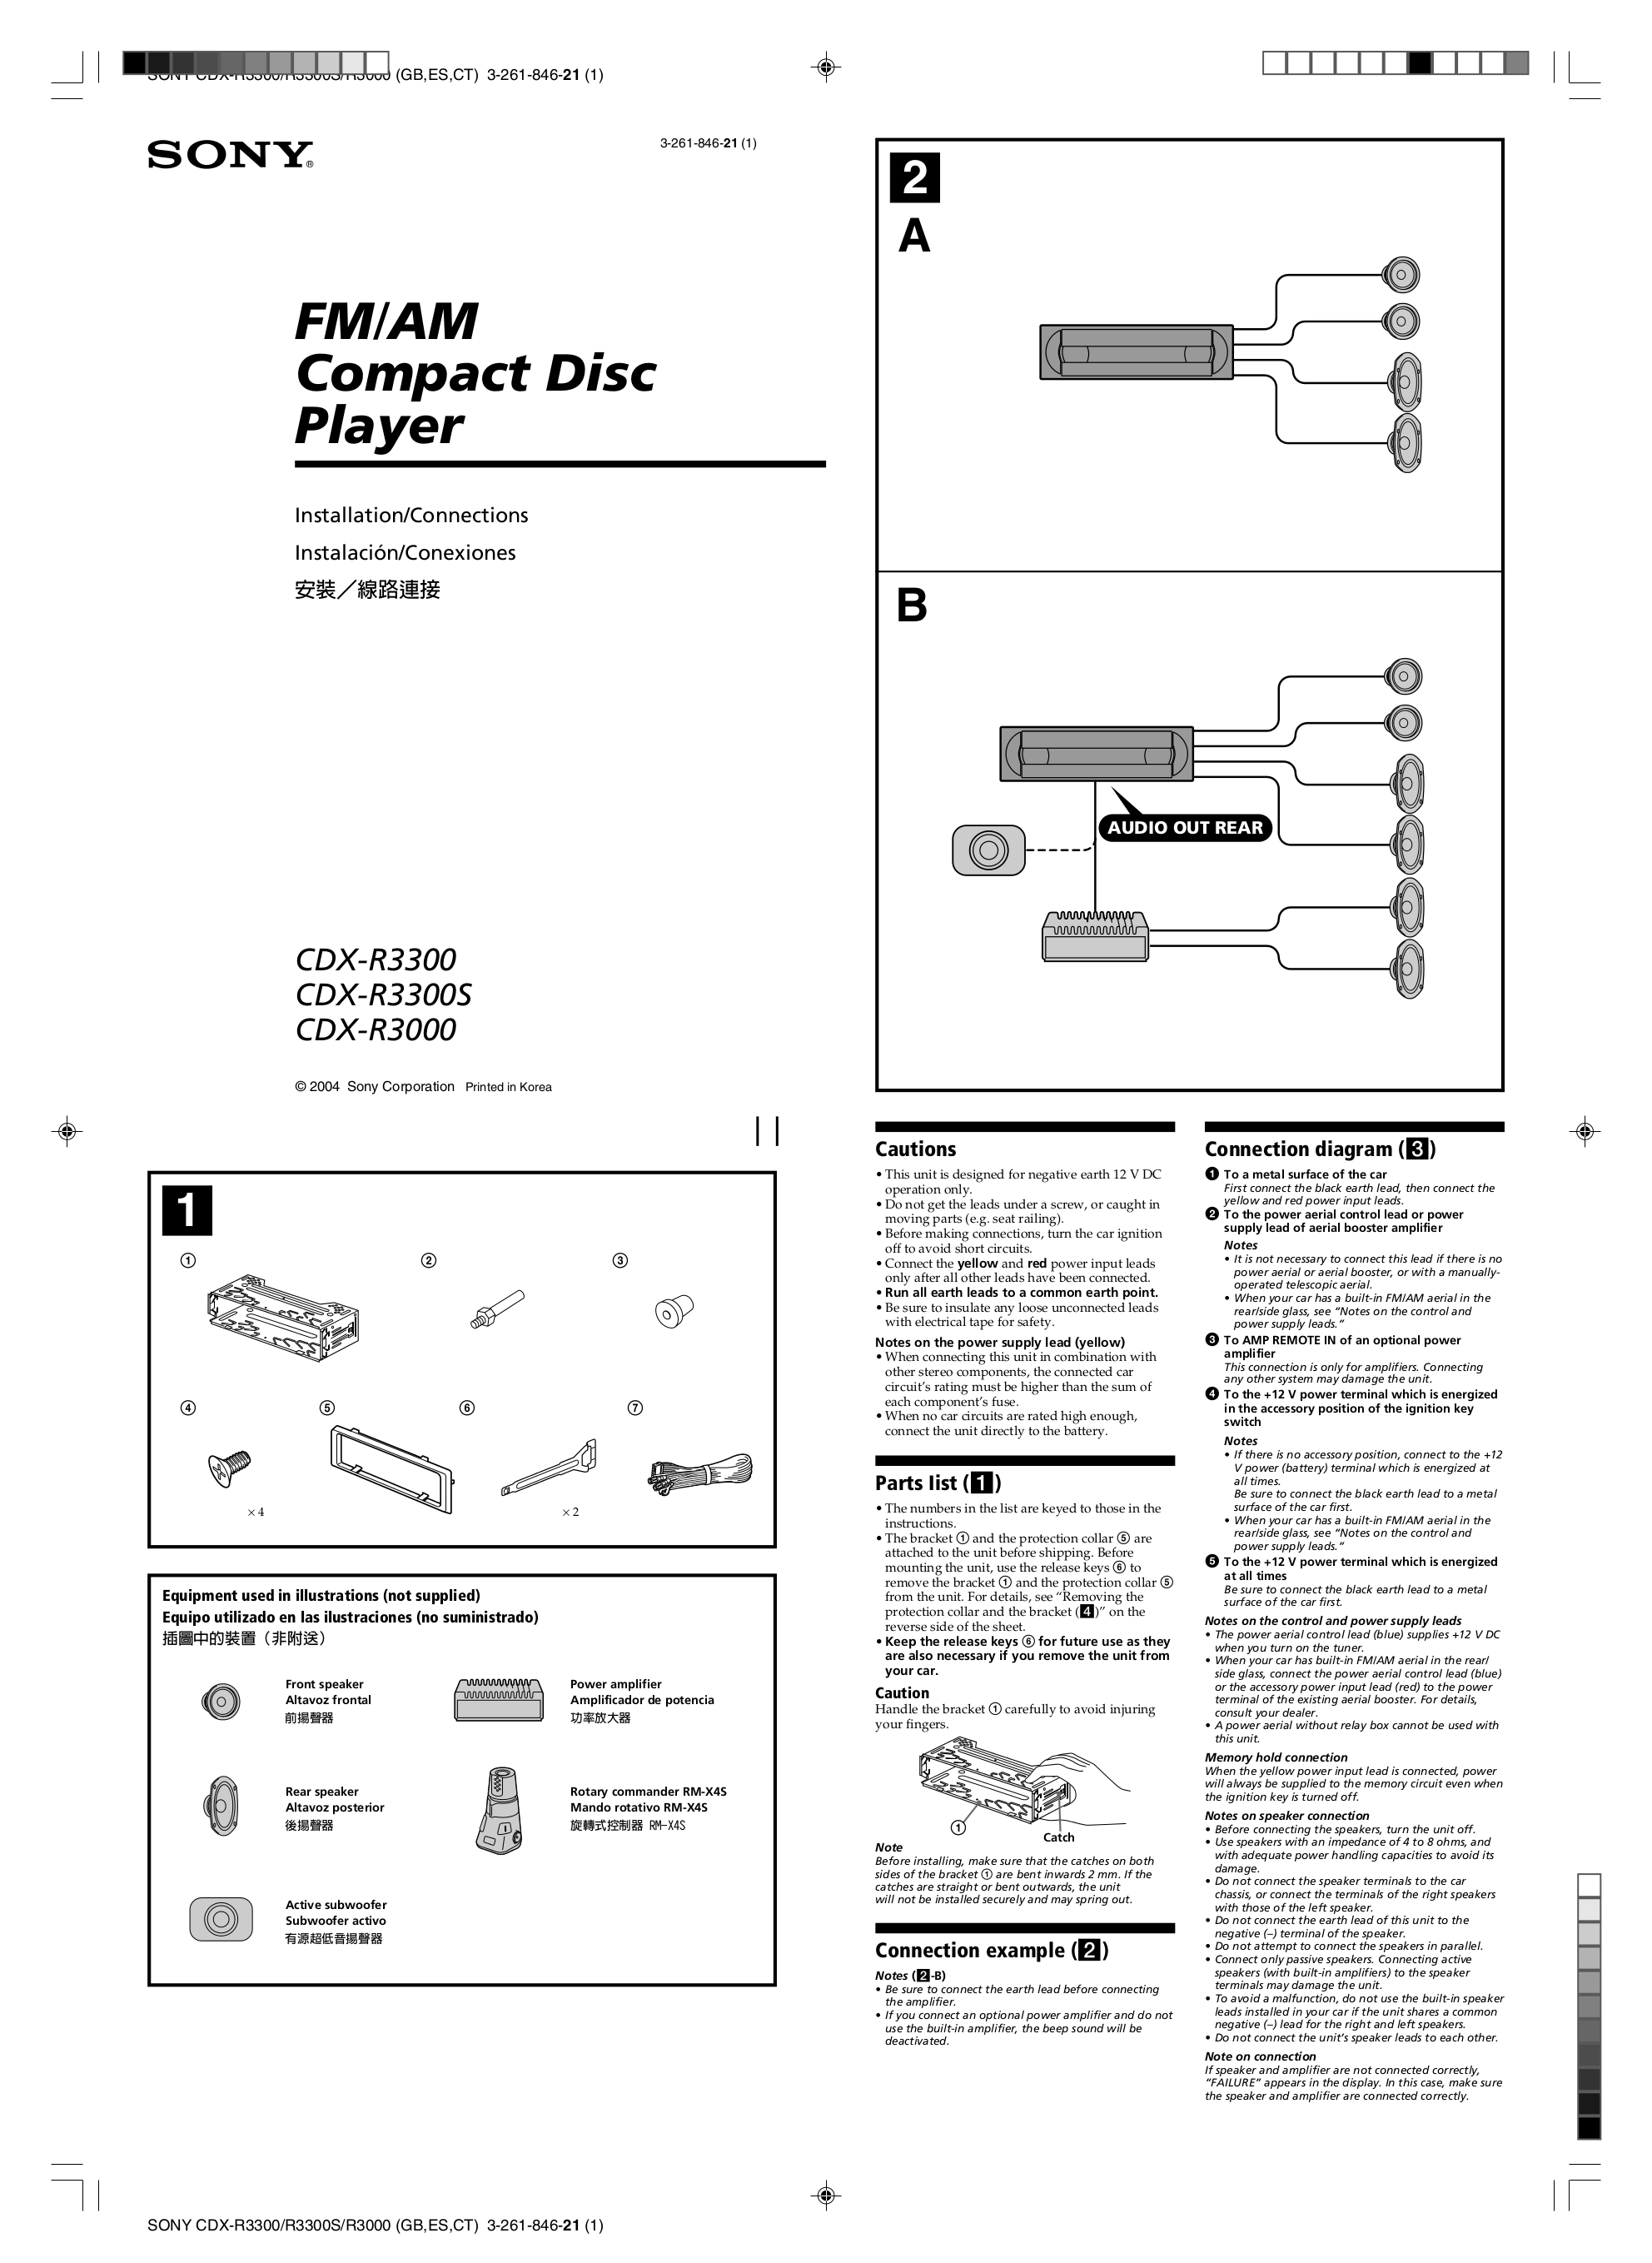 Sony MEX-BT3100P Installation/Connections Manual | Page 2